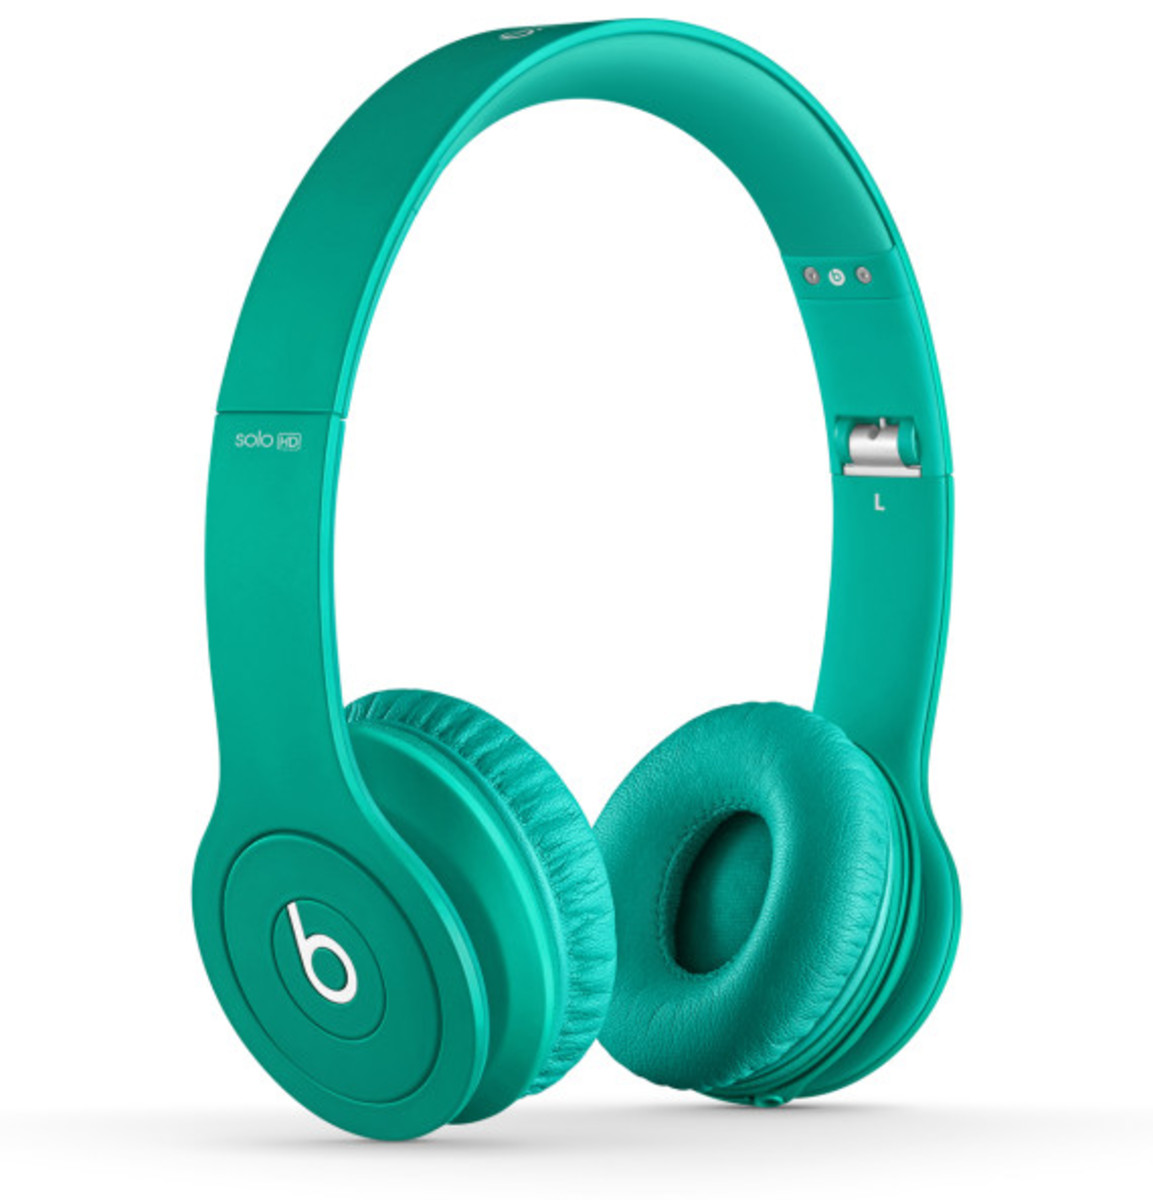 beats-by-dre-solo-hd-drenched-in-color-headphone-collection-24